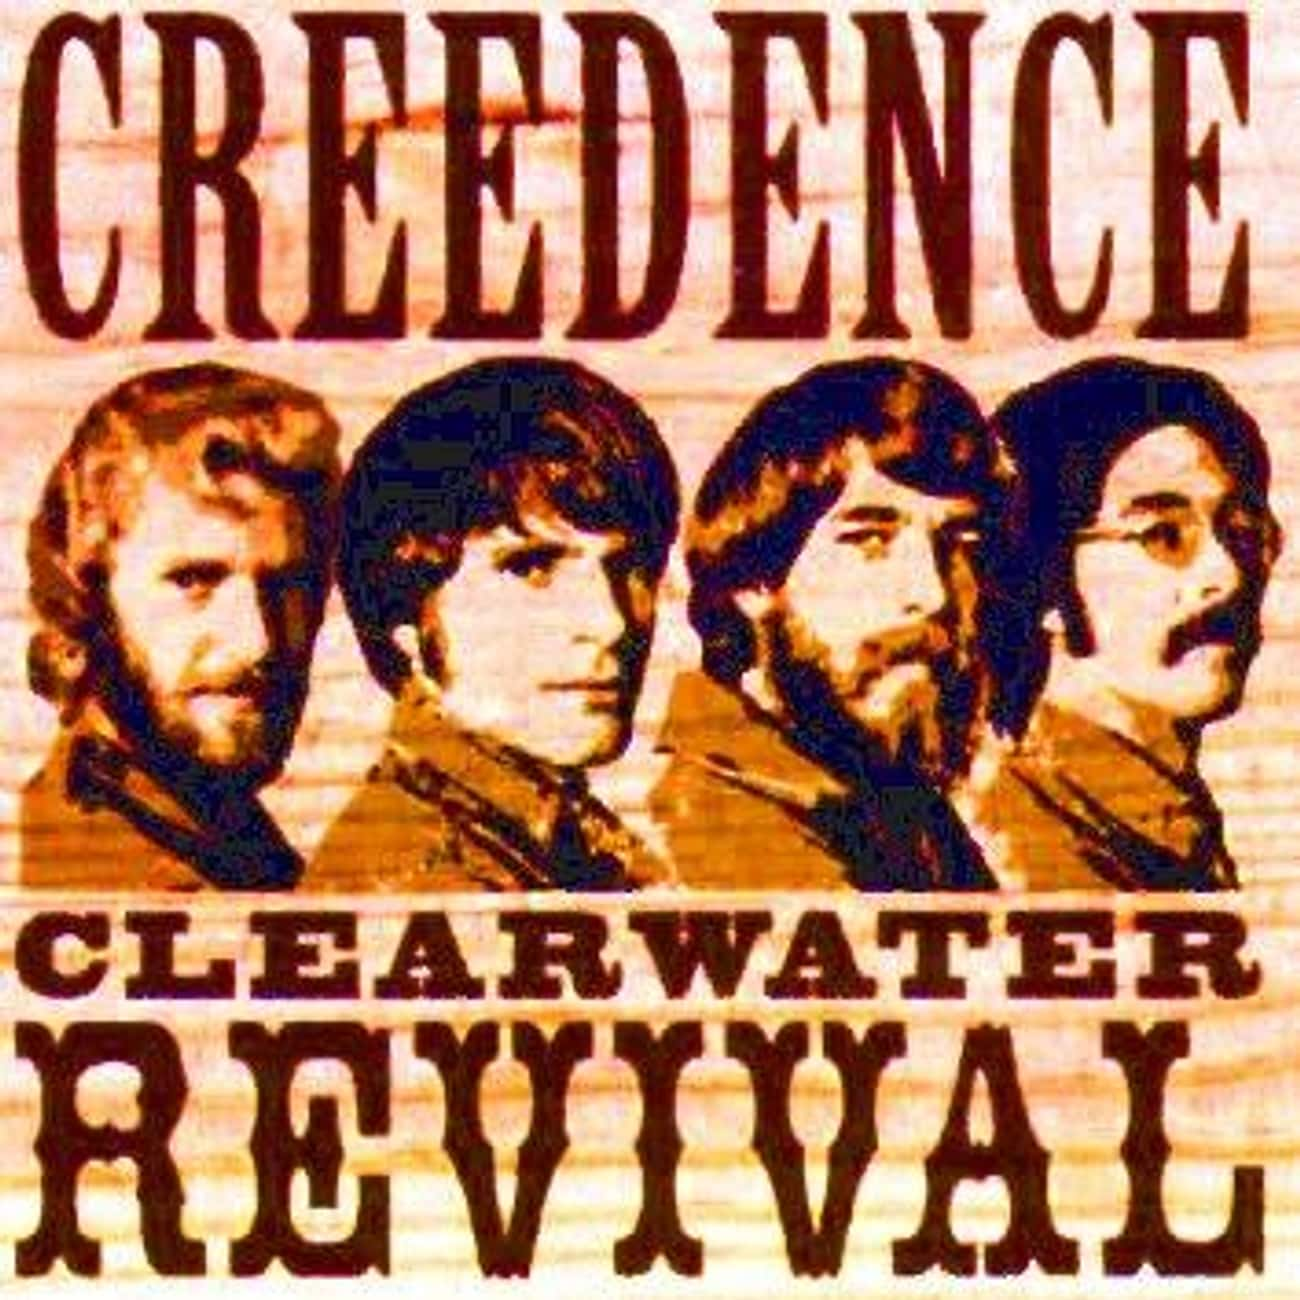 Creedence Clearwater Revival is listed (or ranked) 4 on the list The Best Band Name Origin Stories